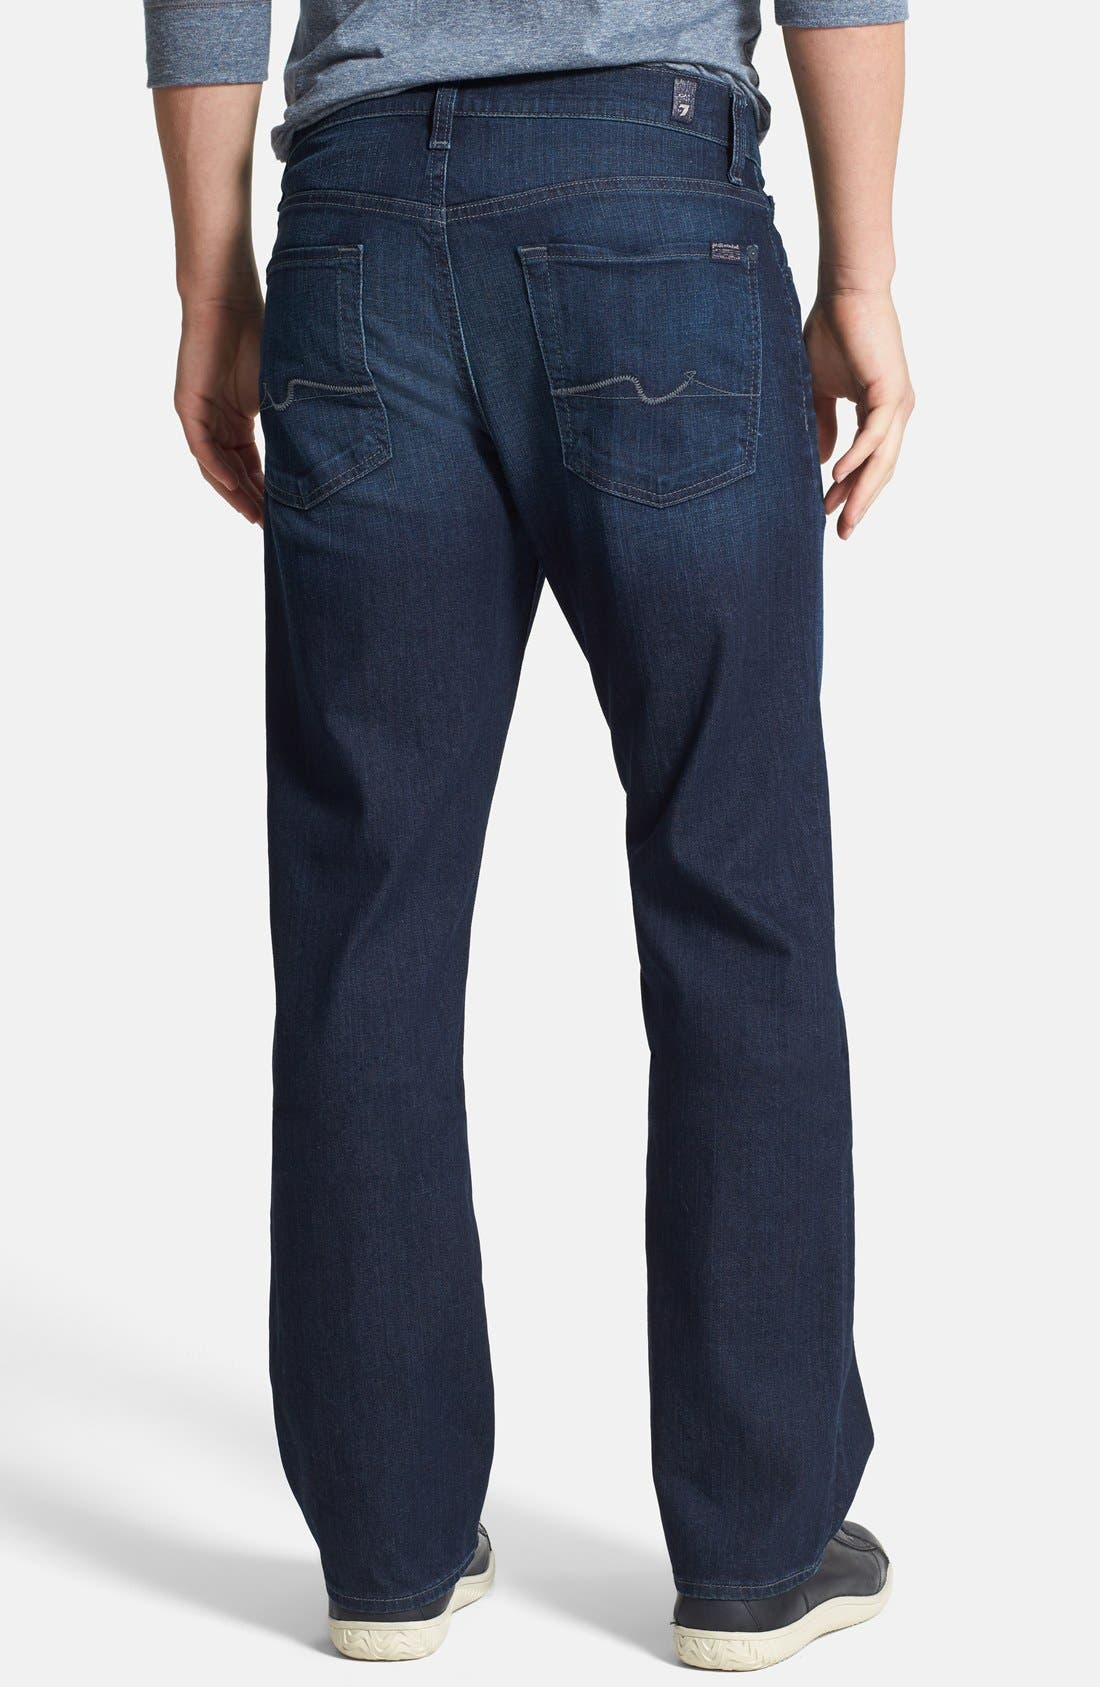 Alternate Image 2  - 7 For All Mankind® 'Austyn' Relaxed Straight Leg Jeans (Broadview Way)